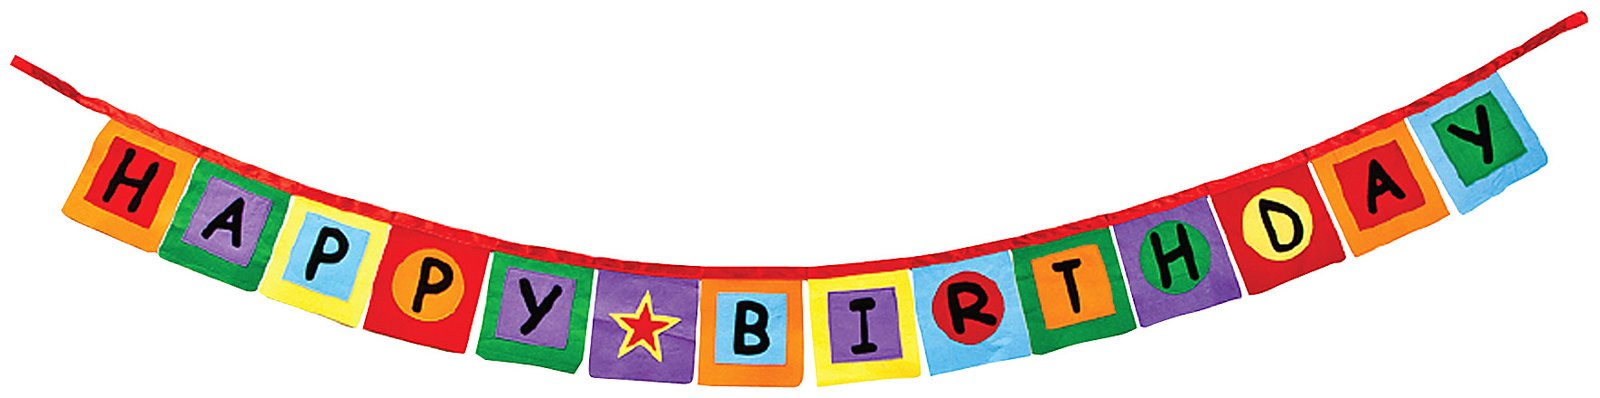 happy20birthday20banner20clipart